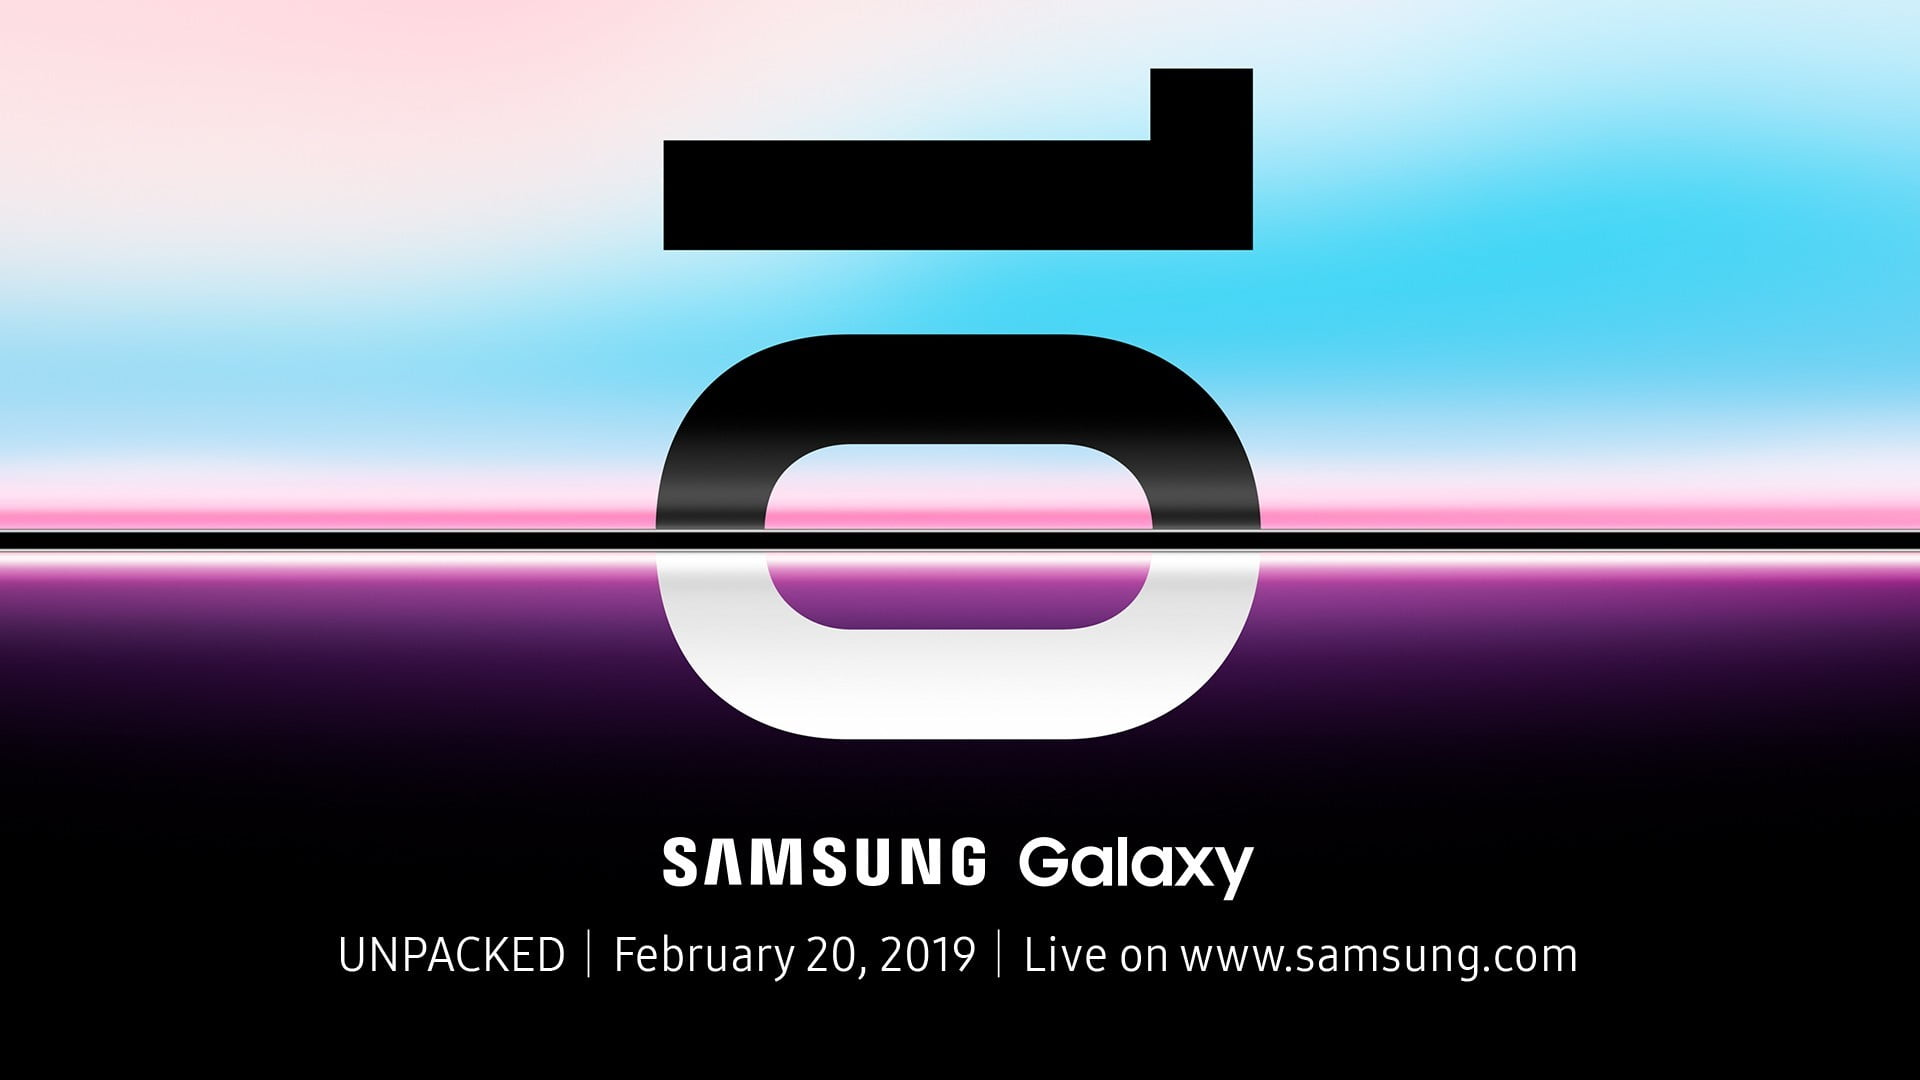 Samsungs Galaxy Unpacked Event Skips Mwc For San Francisco